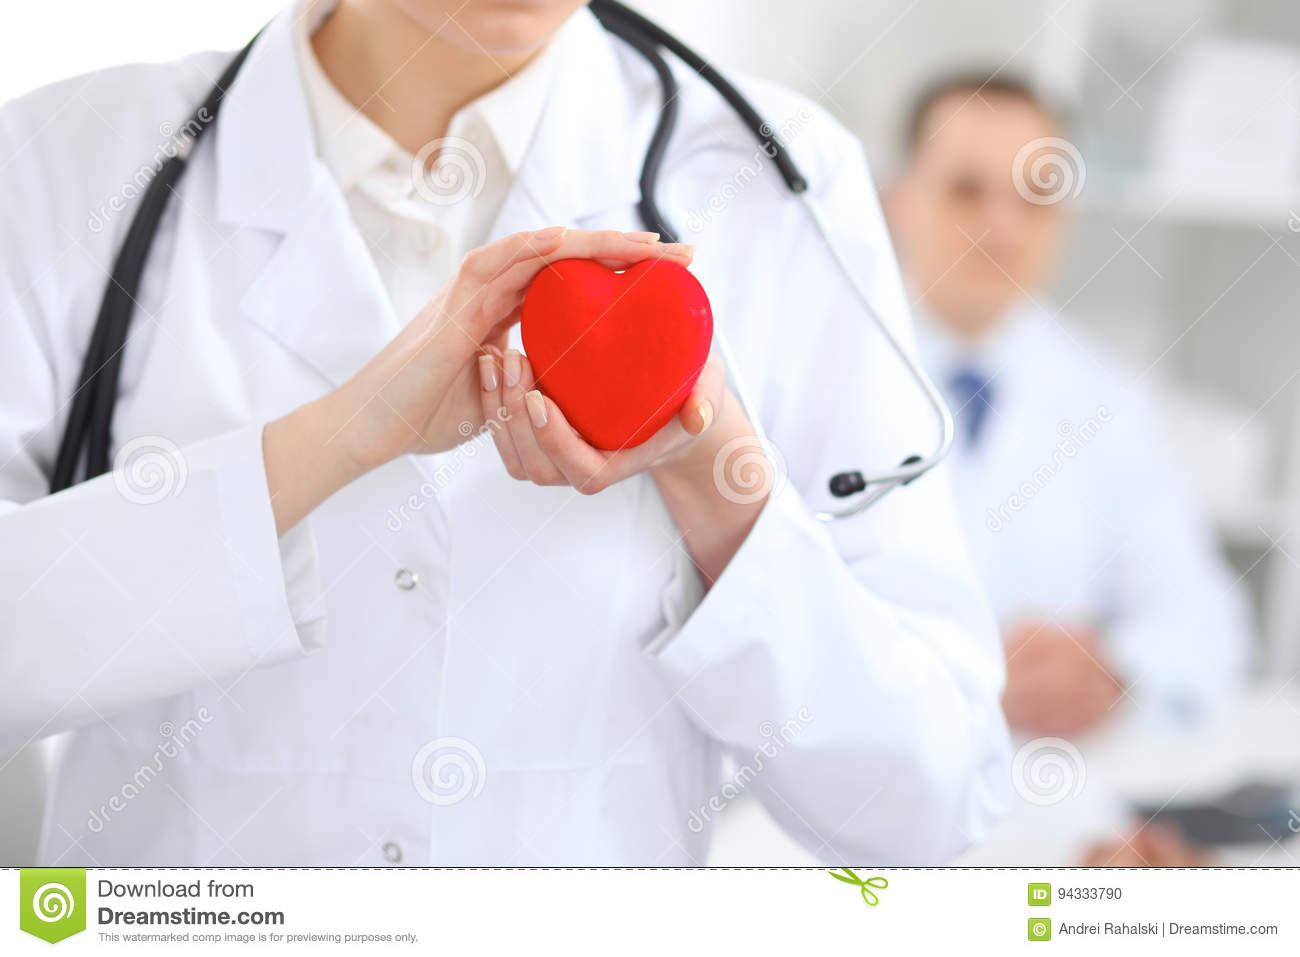 Female doctor with stethoscope holding heart.